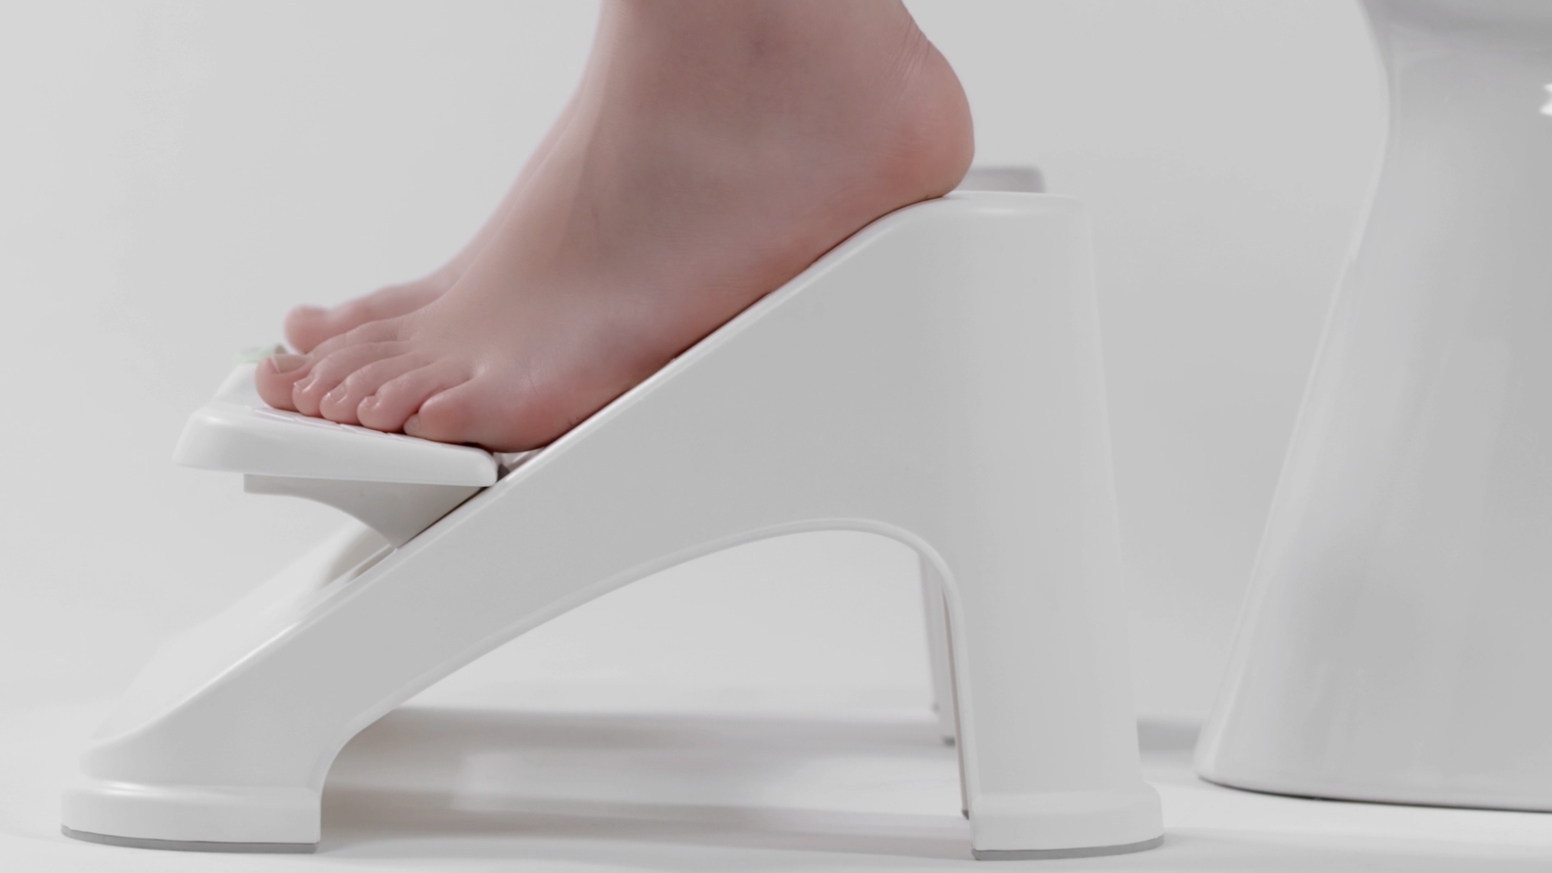 Turbo Stool [FUSION]: An unusually comfortable and height-adjustable toilet stool designed to help you squat = poop better, live well!